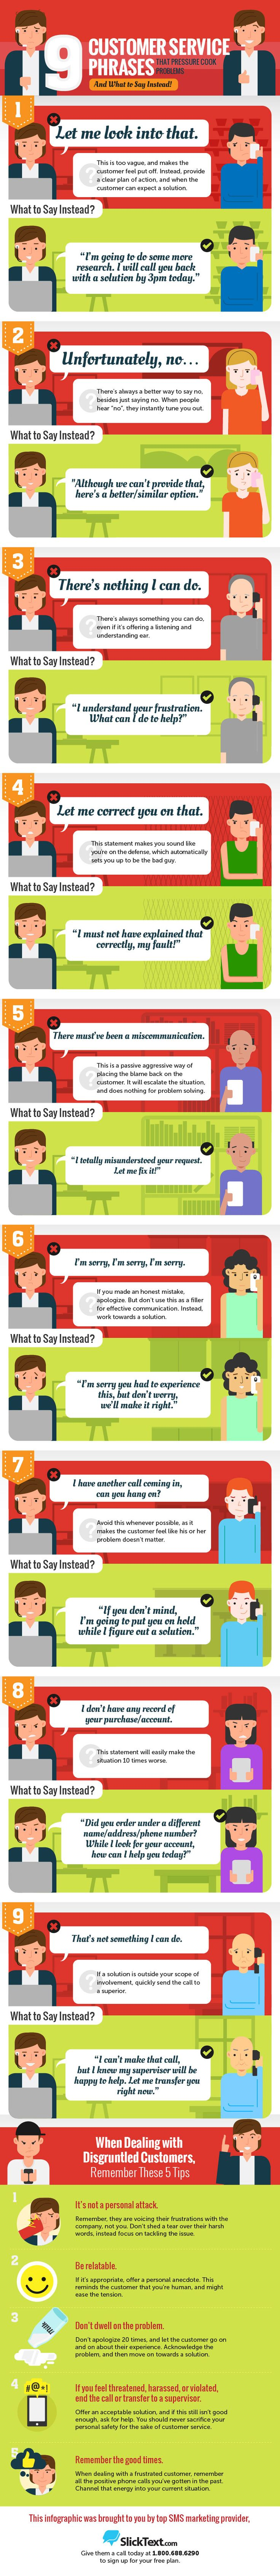 9 Customer Service Phrases to Use Instead, from Web Mag. Learn some good phrases to use instead and avoid losing a customer! #infographic #howto